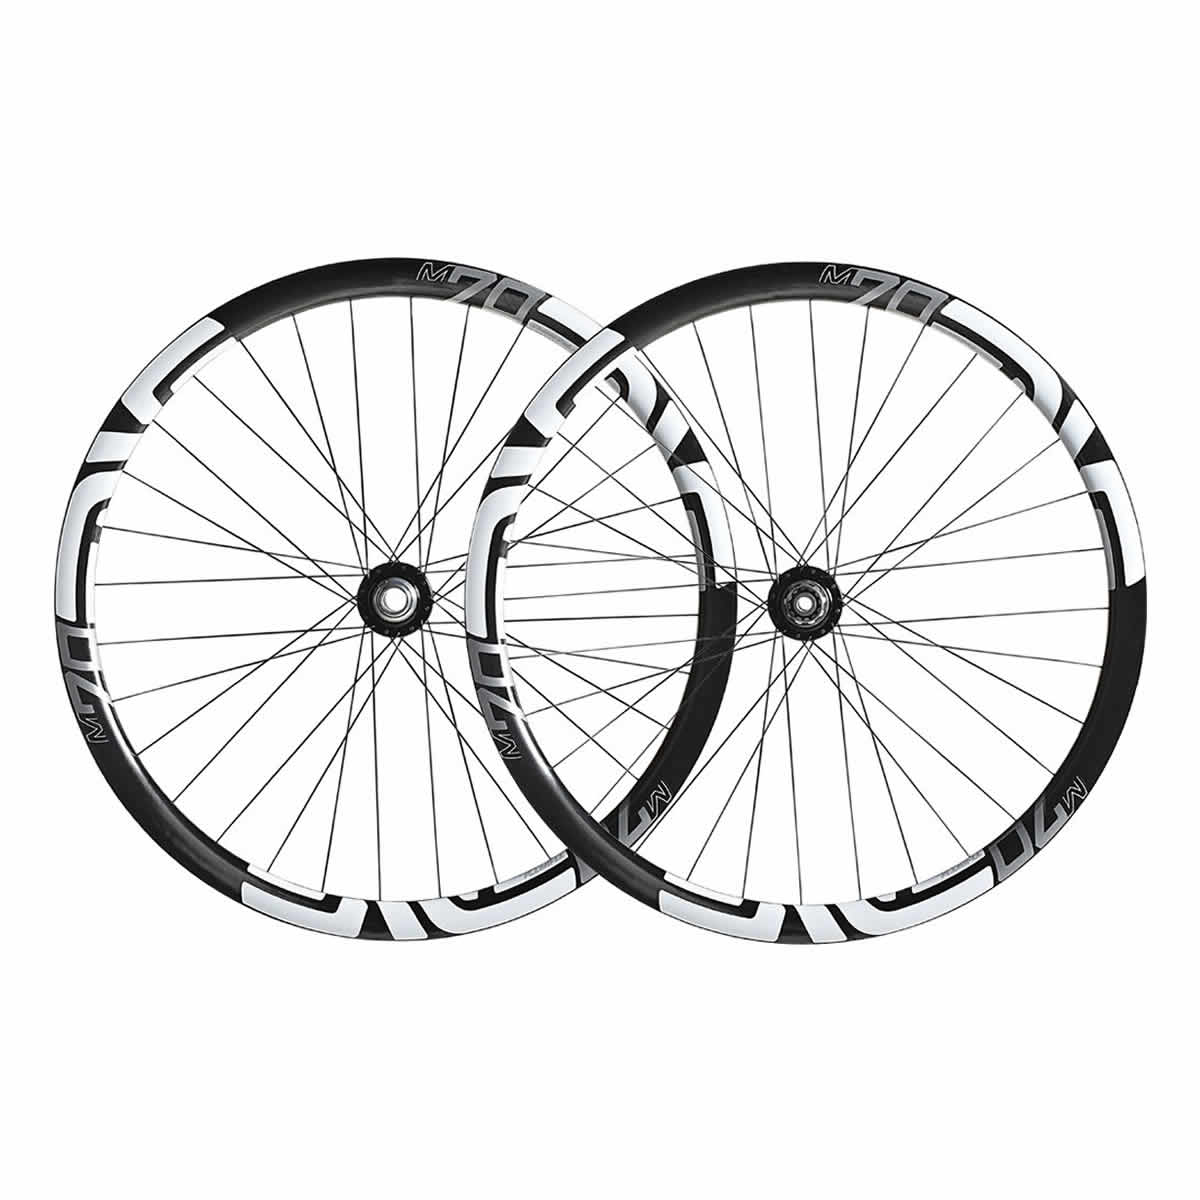 ENVE/DT Swiss M70/350 Carbon Fiber Wheel Set